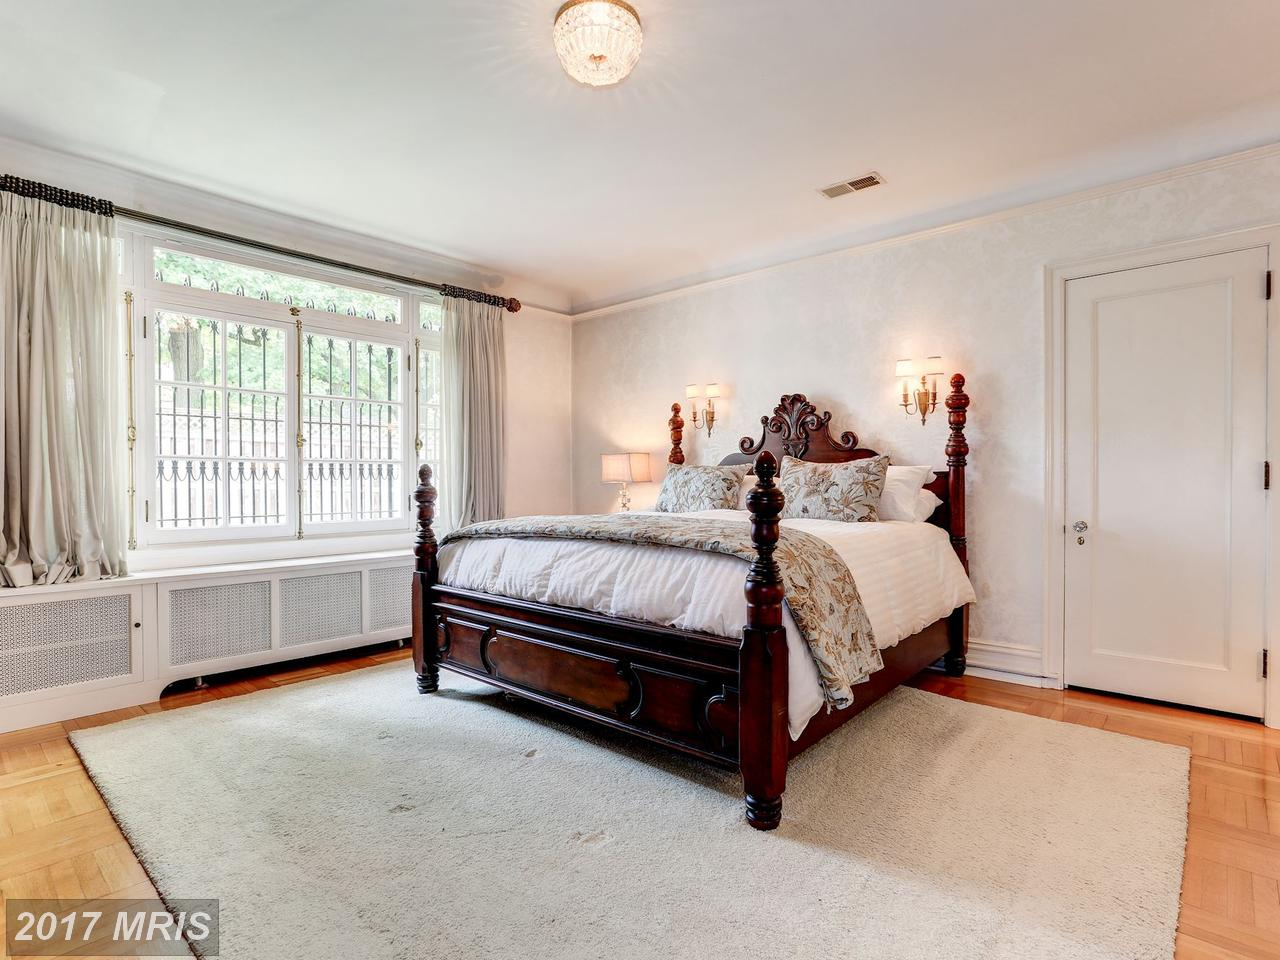 Additional photo for property listing at Detached, International - HAGERSTOWN, MD 951 THE TERRACE Hagerstown, Maryland,21742 Verenigde Staten